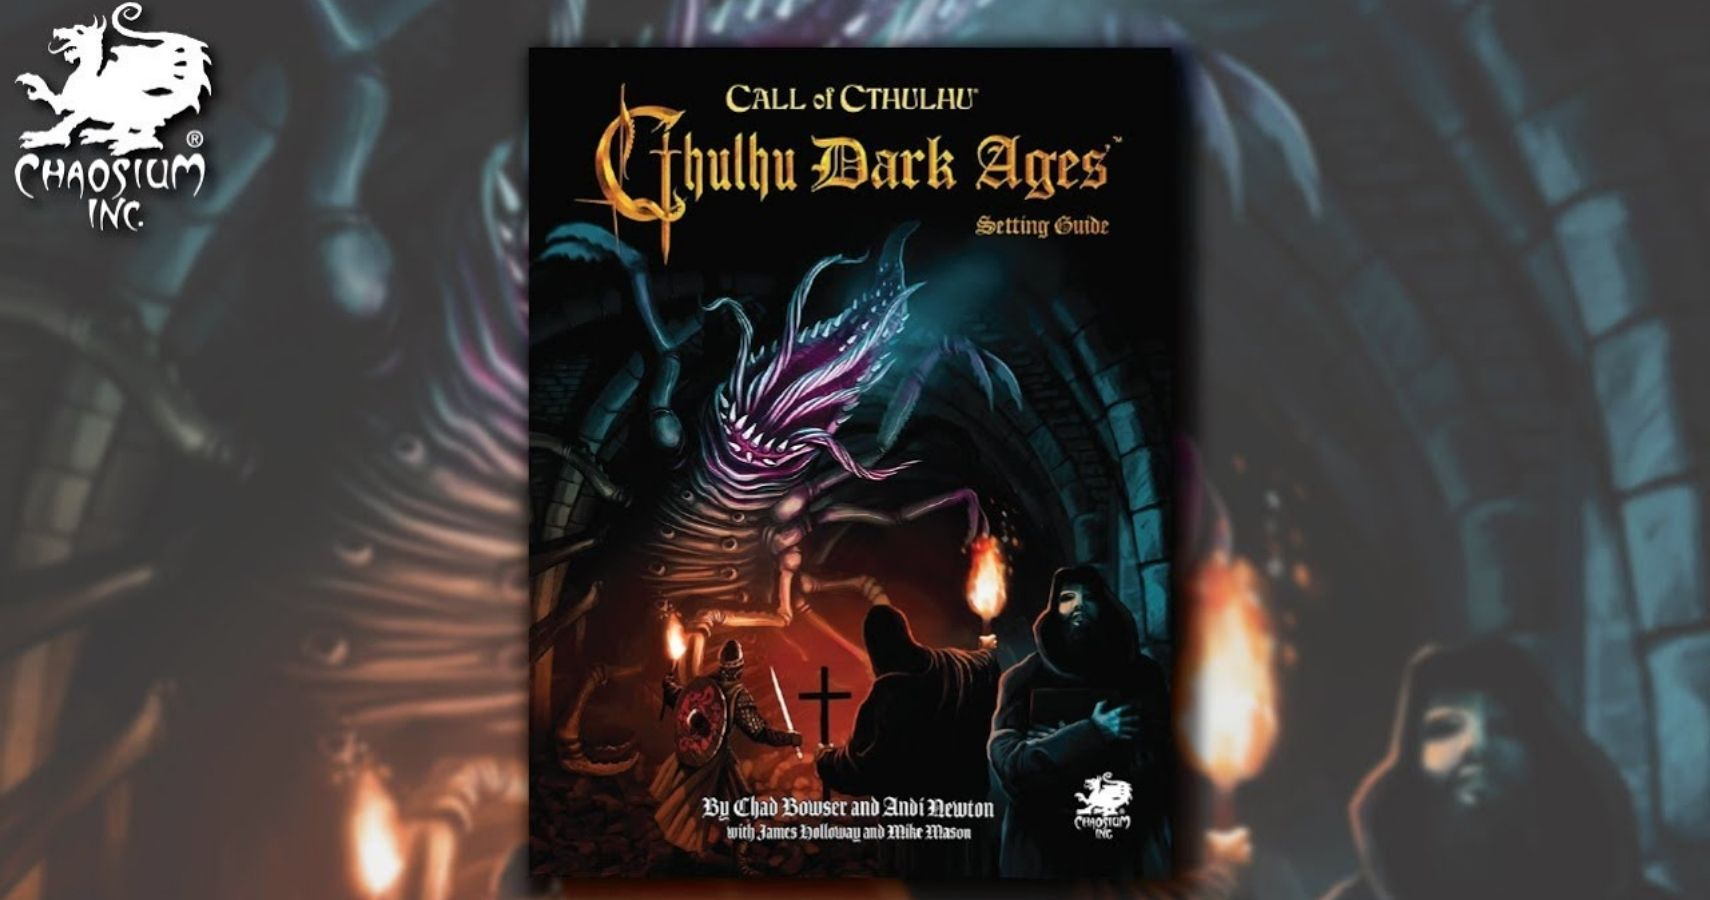 Download These Cthulhu Dark Ages Handouts And Pre-gen Characters For Free